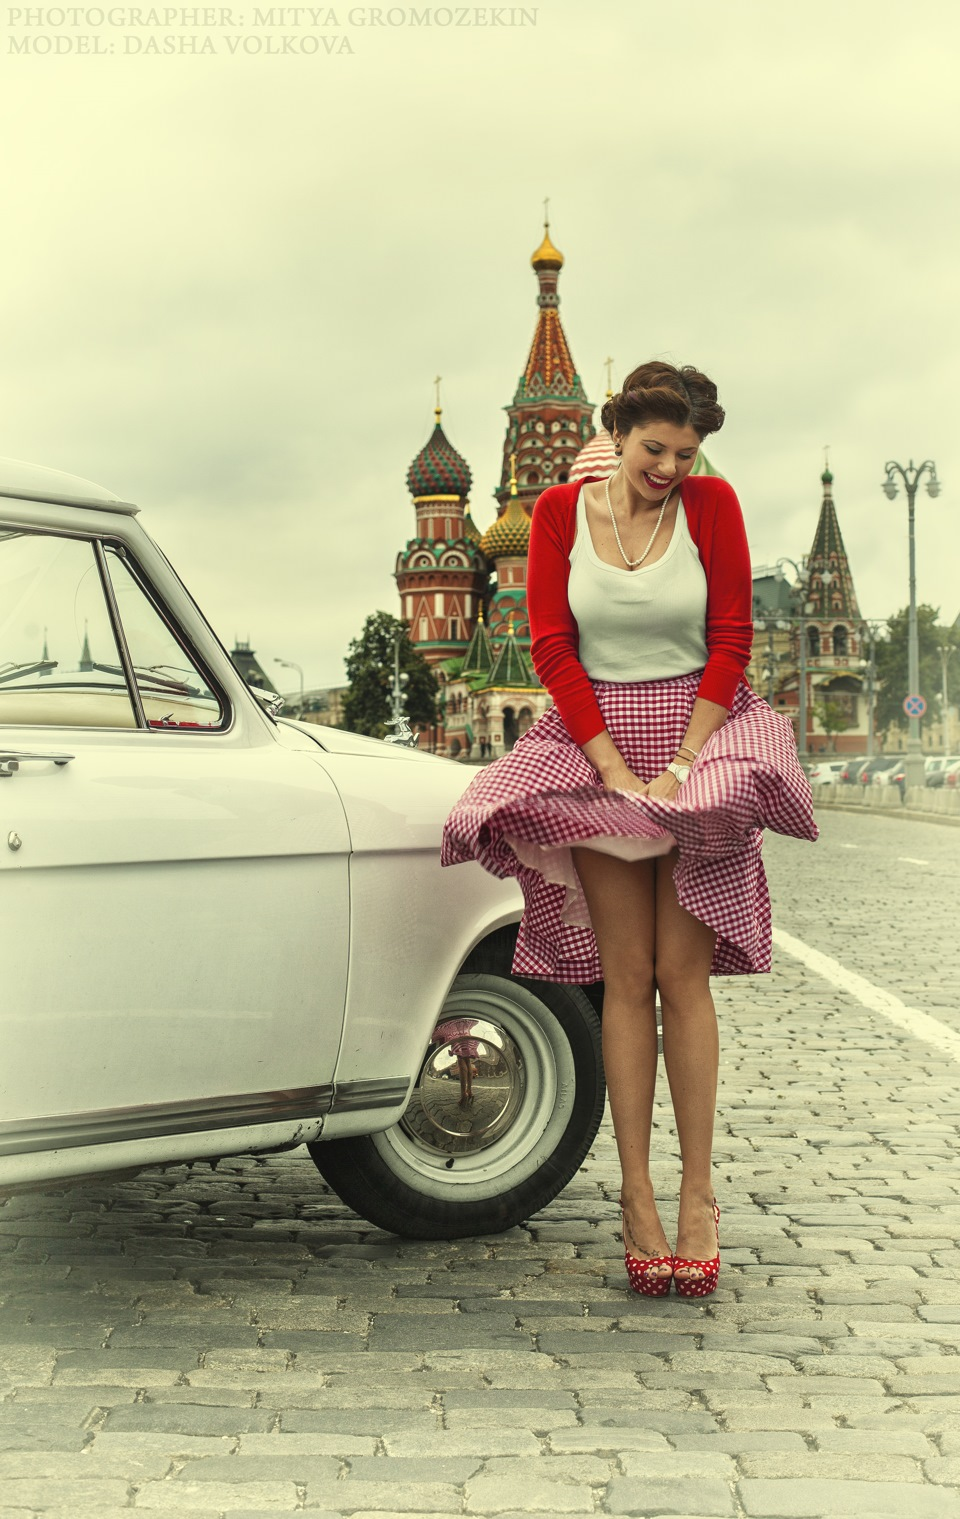 Photo-shoots with Russian beauties and Soviet cars - 26